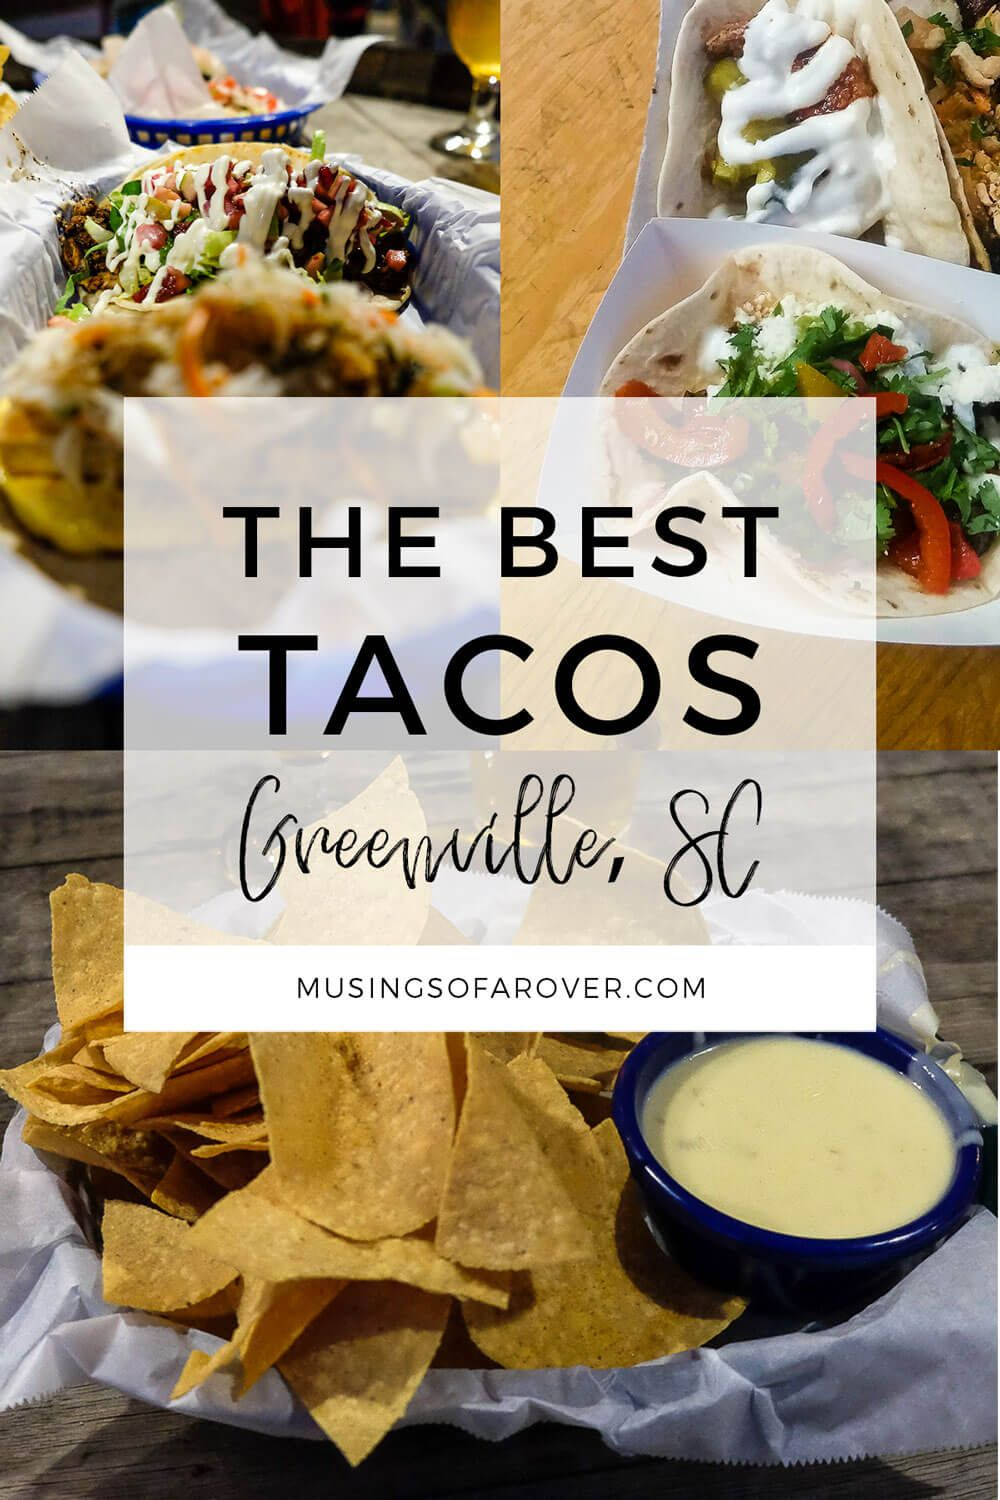 Looking for the best tacos in Greenville South Carolina (Greenville SC)? Head to White Duck Taco, Farmhouse Tacos, Automatic Taco, Willy's & Cantina 76. greenville, greenville south carolina, greenville sc things to do in, greenville south carolina things to do, greenville travel, greenville south carolina downtown,